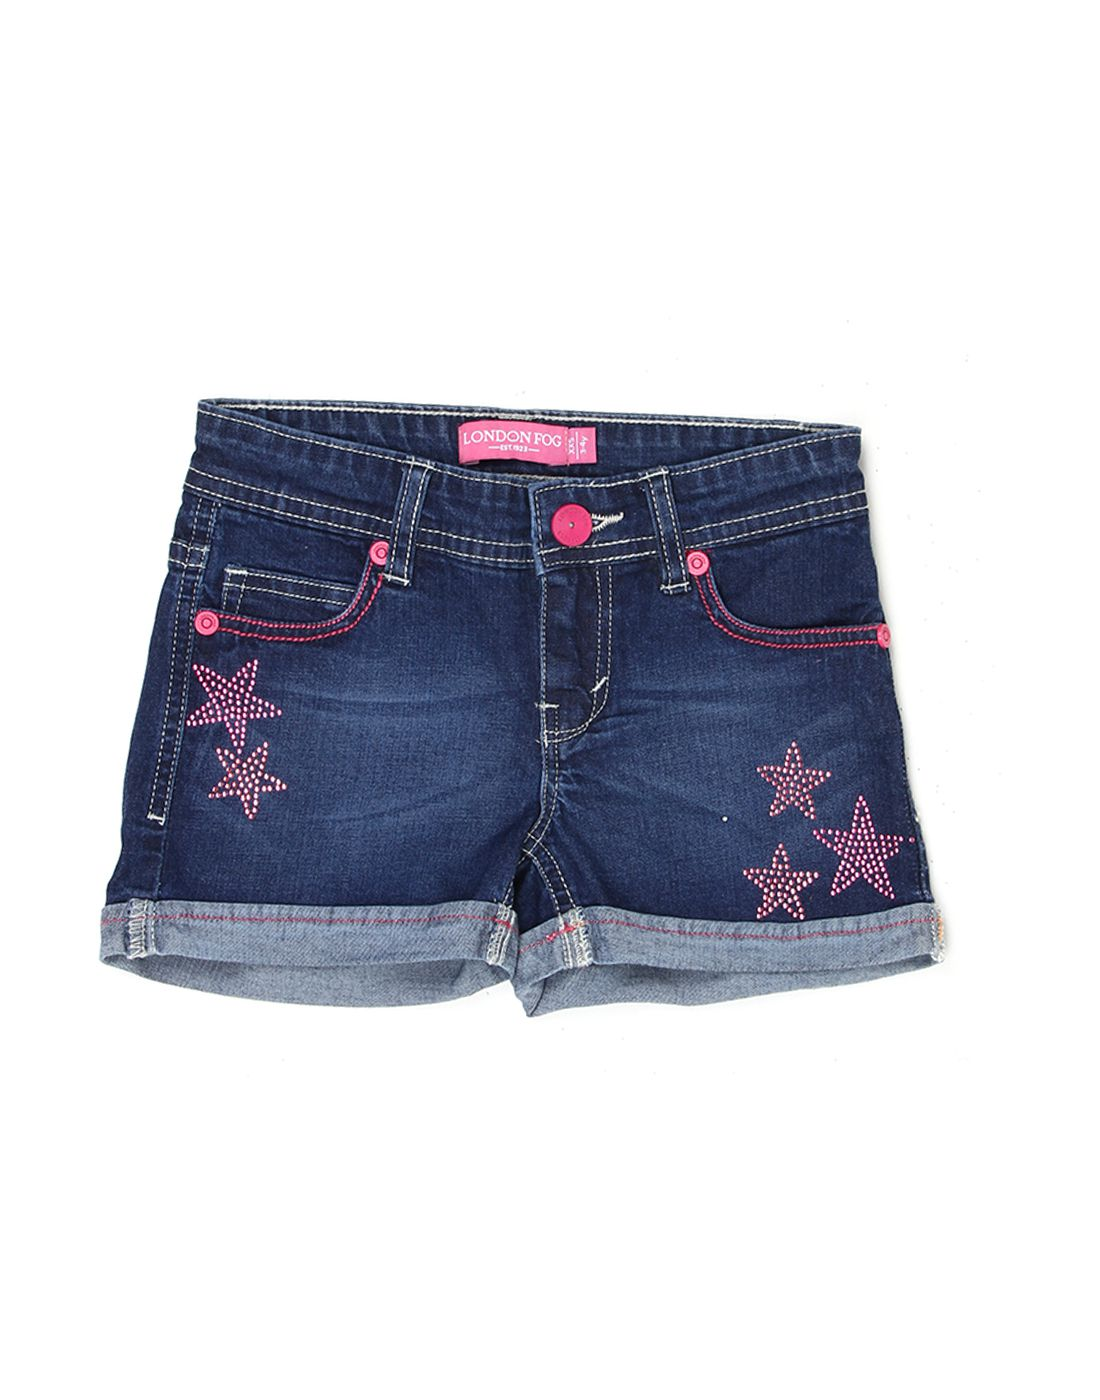 London Fog Girls Blue  Short